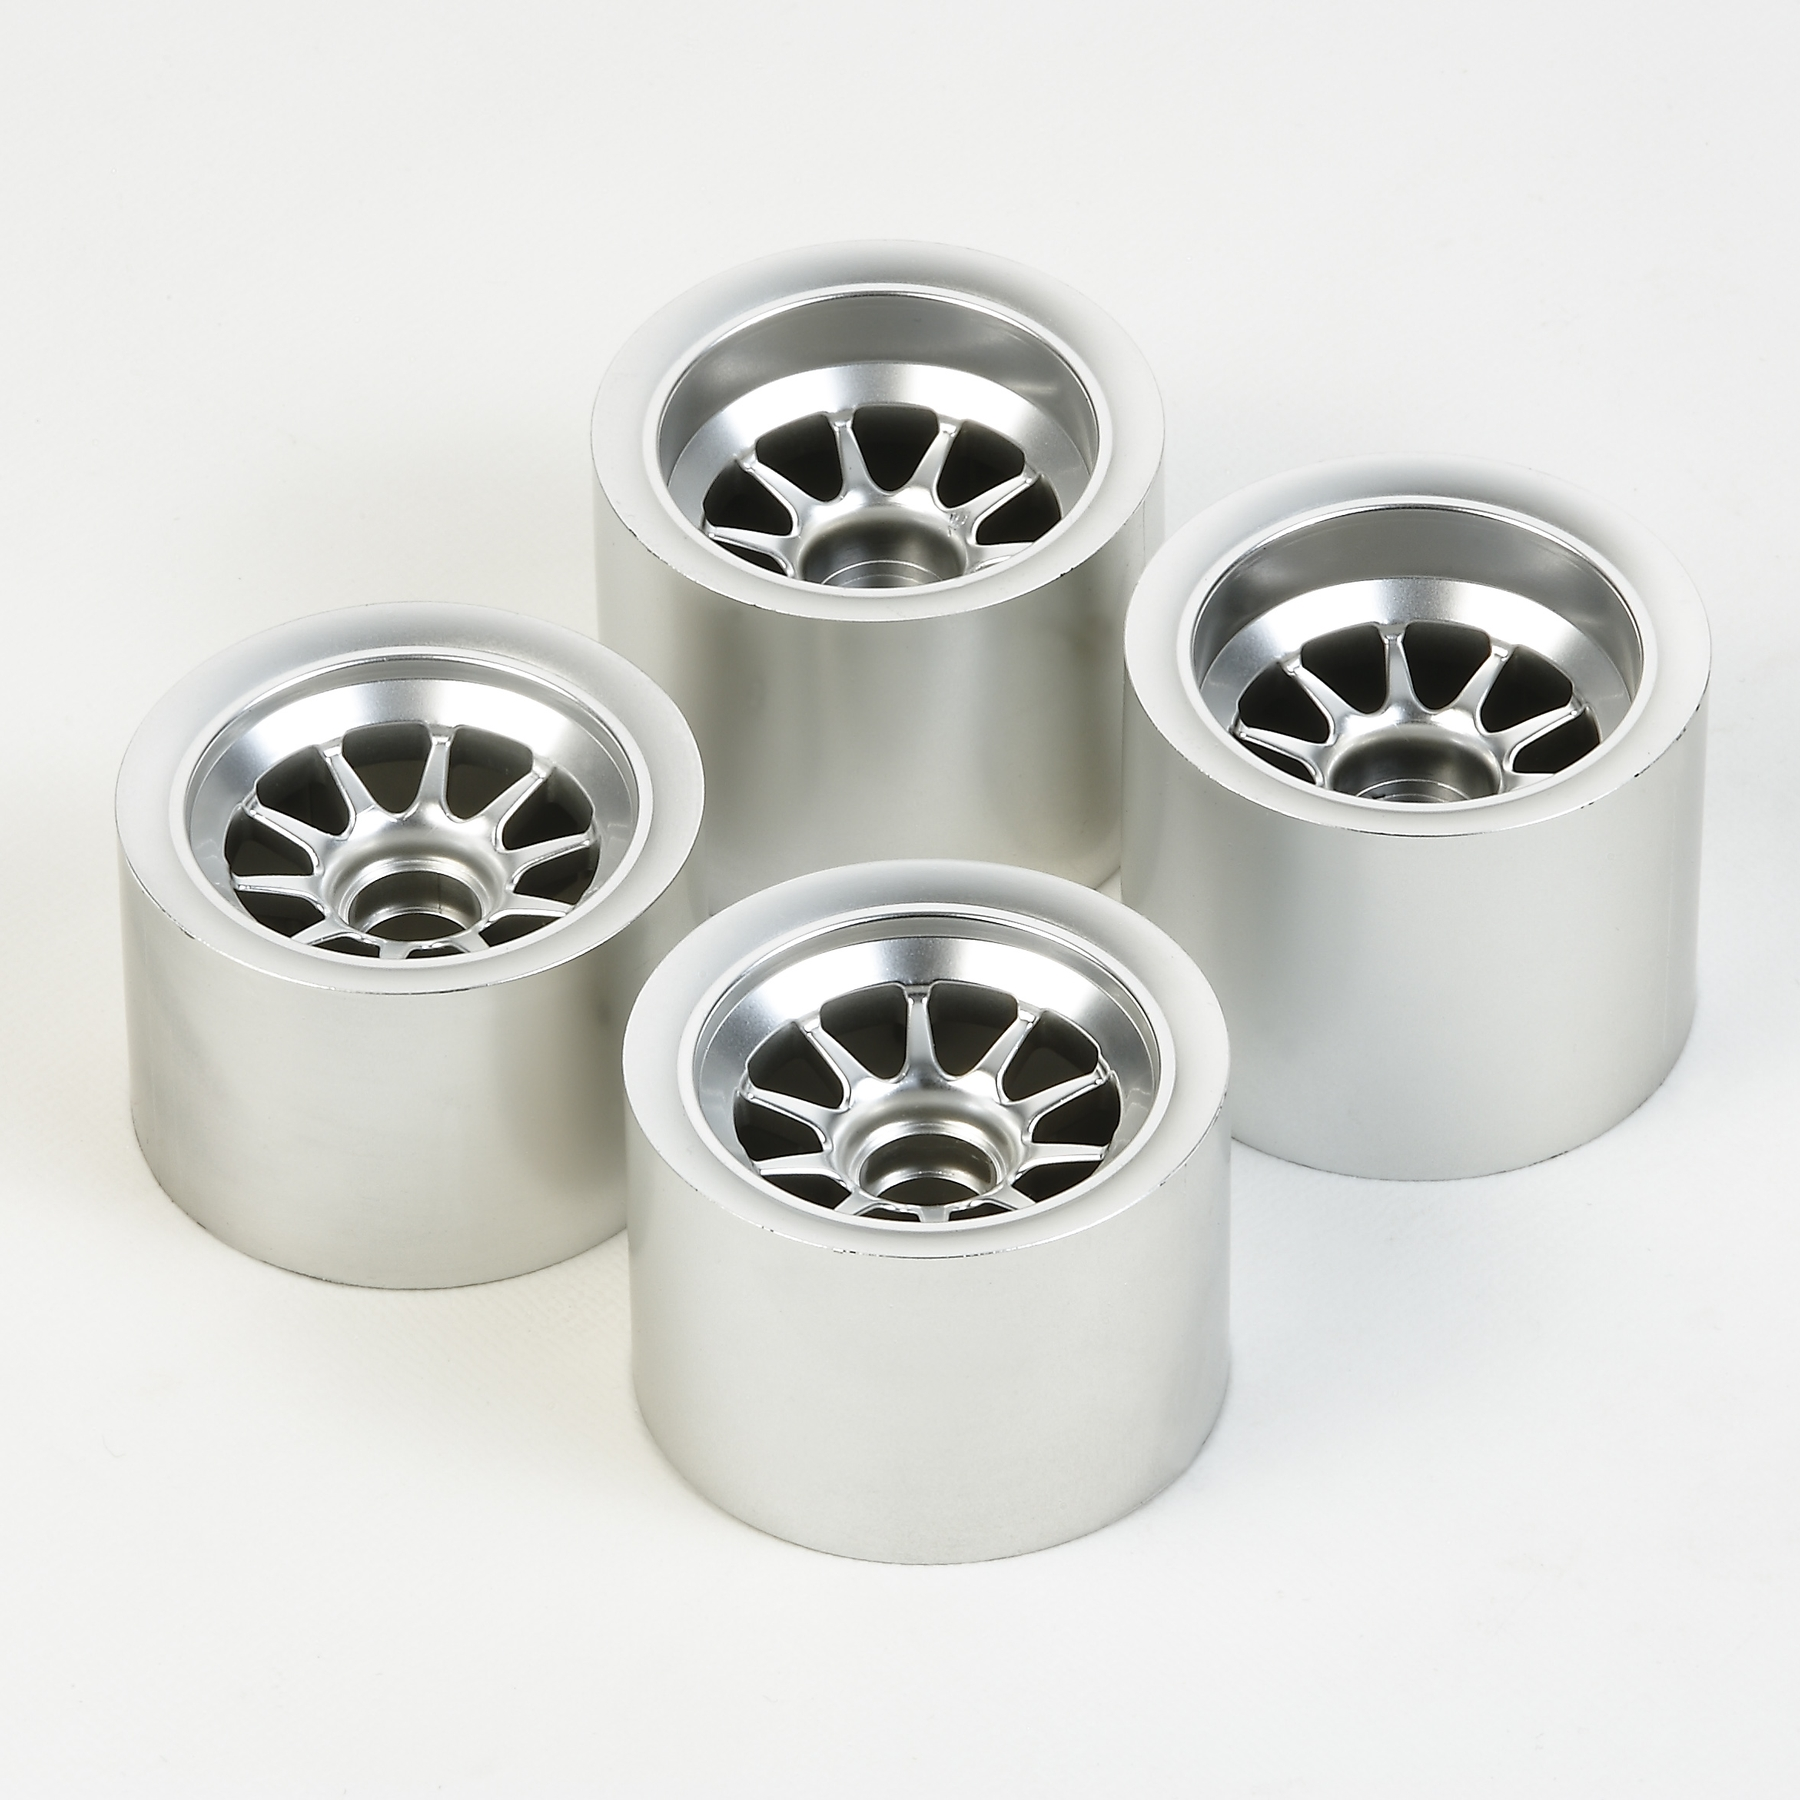 Rc F104 Metal Plated Wheels